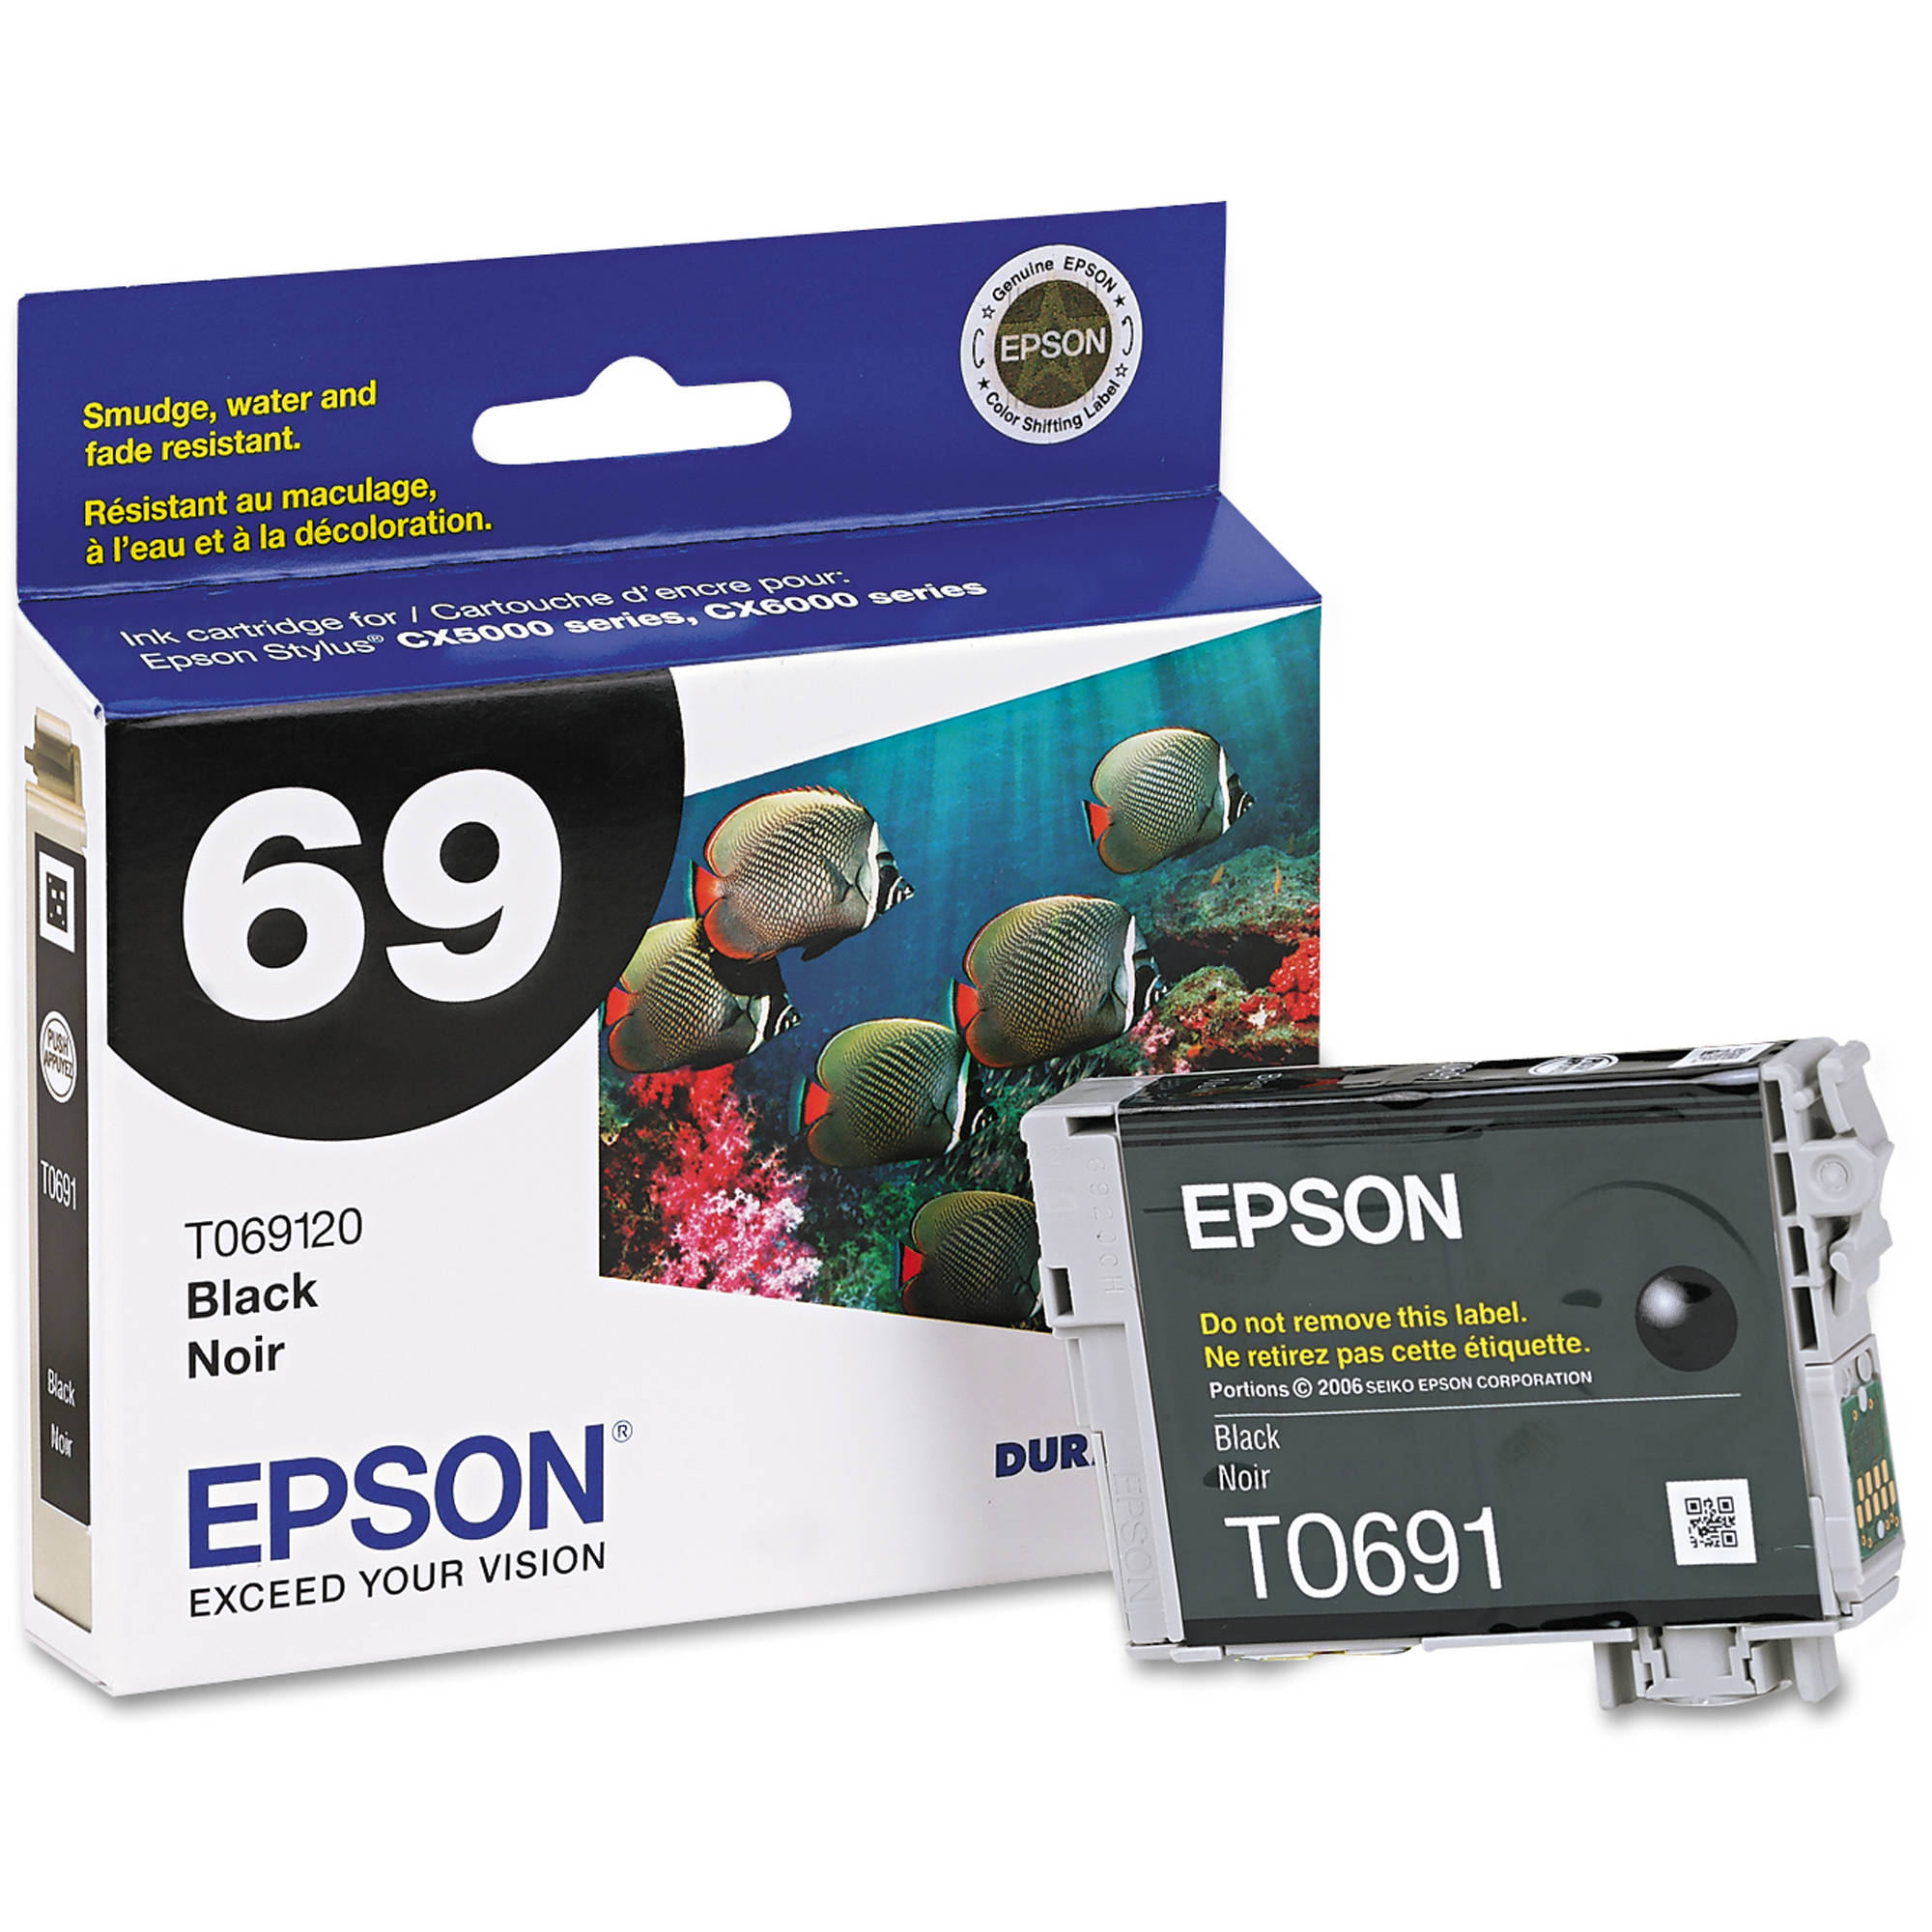 Epson DuraBrite Ultra Ink Black Cartridge for Stylus CX5000, CX6000, CX8400, CX9400 (T069120)